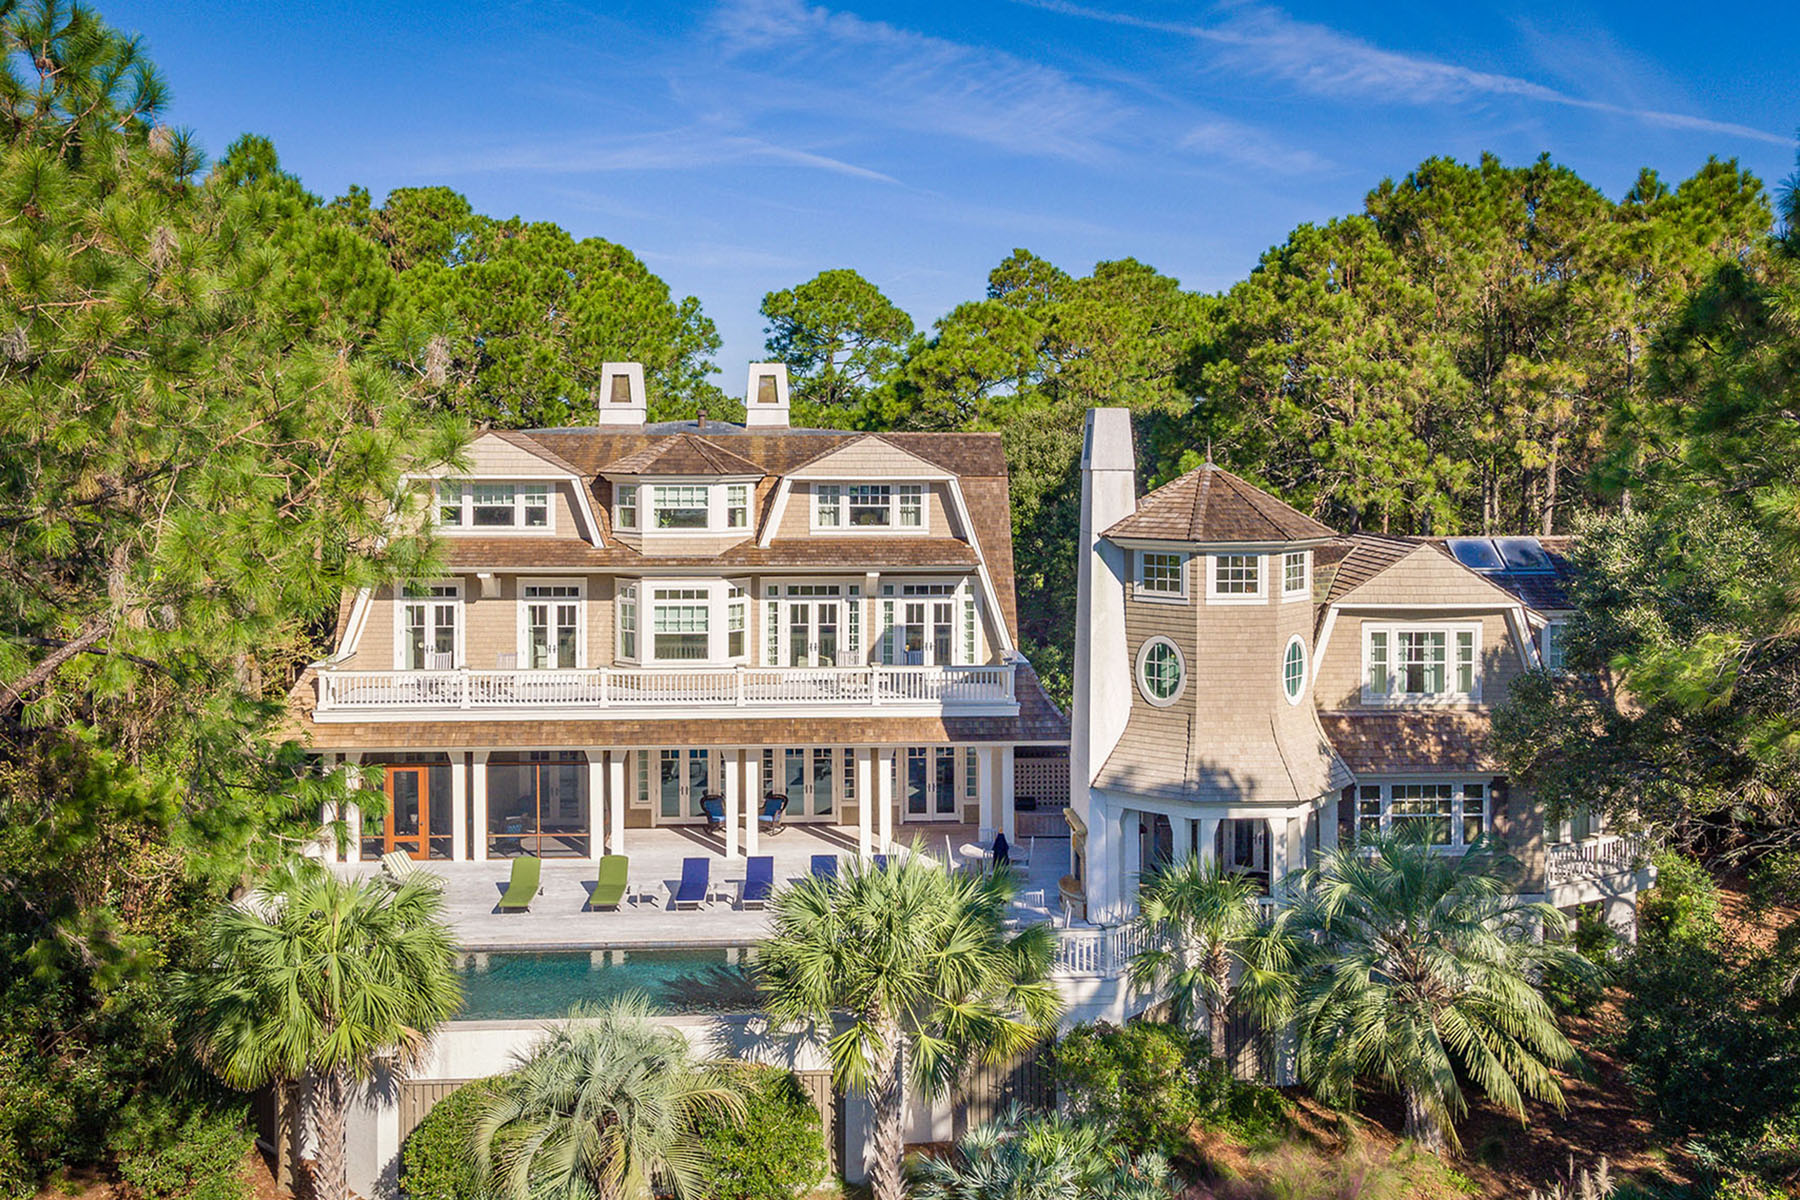 Single Family Home for Sale at 109 Flyway Drive Kiawah Island, South Carolina, 29455 United States